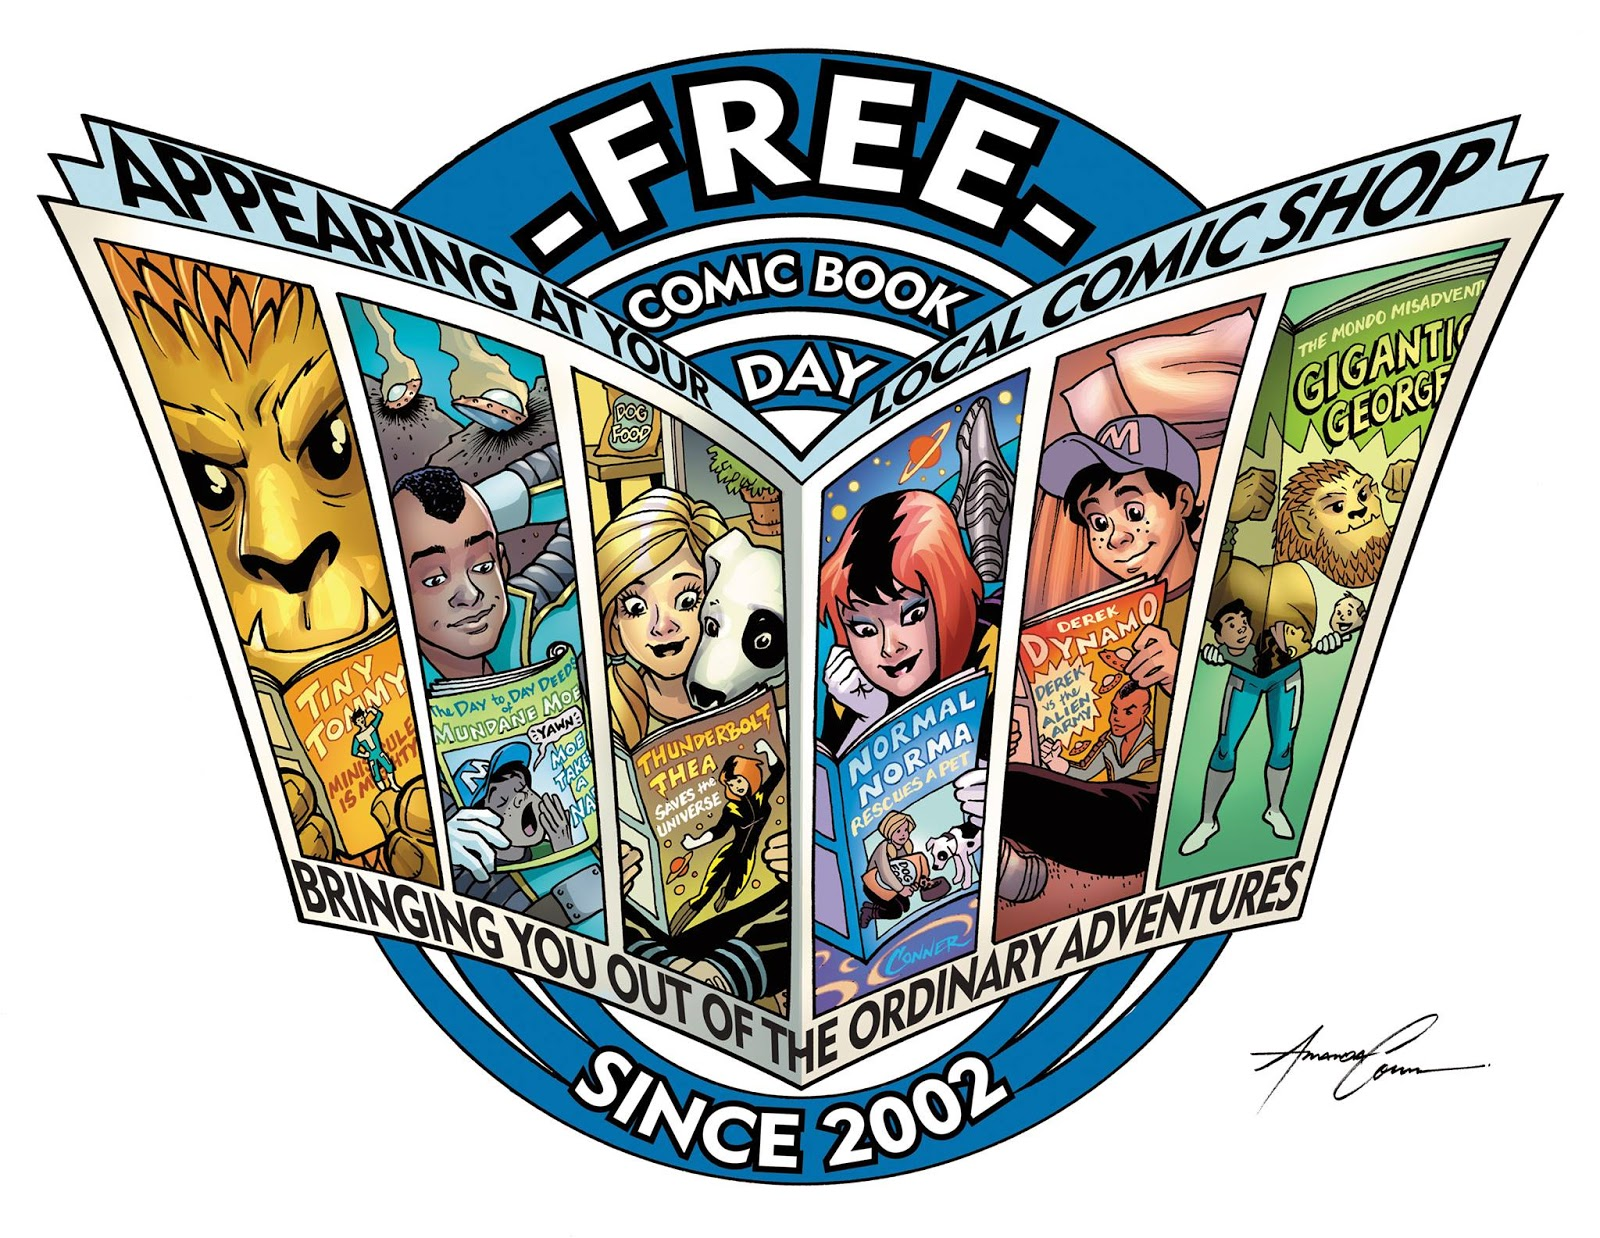 Free Comic Book Day is May 2nd